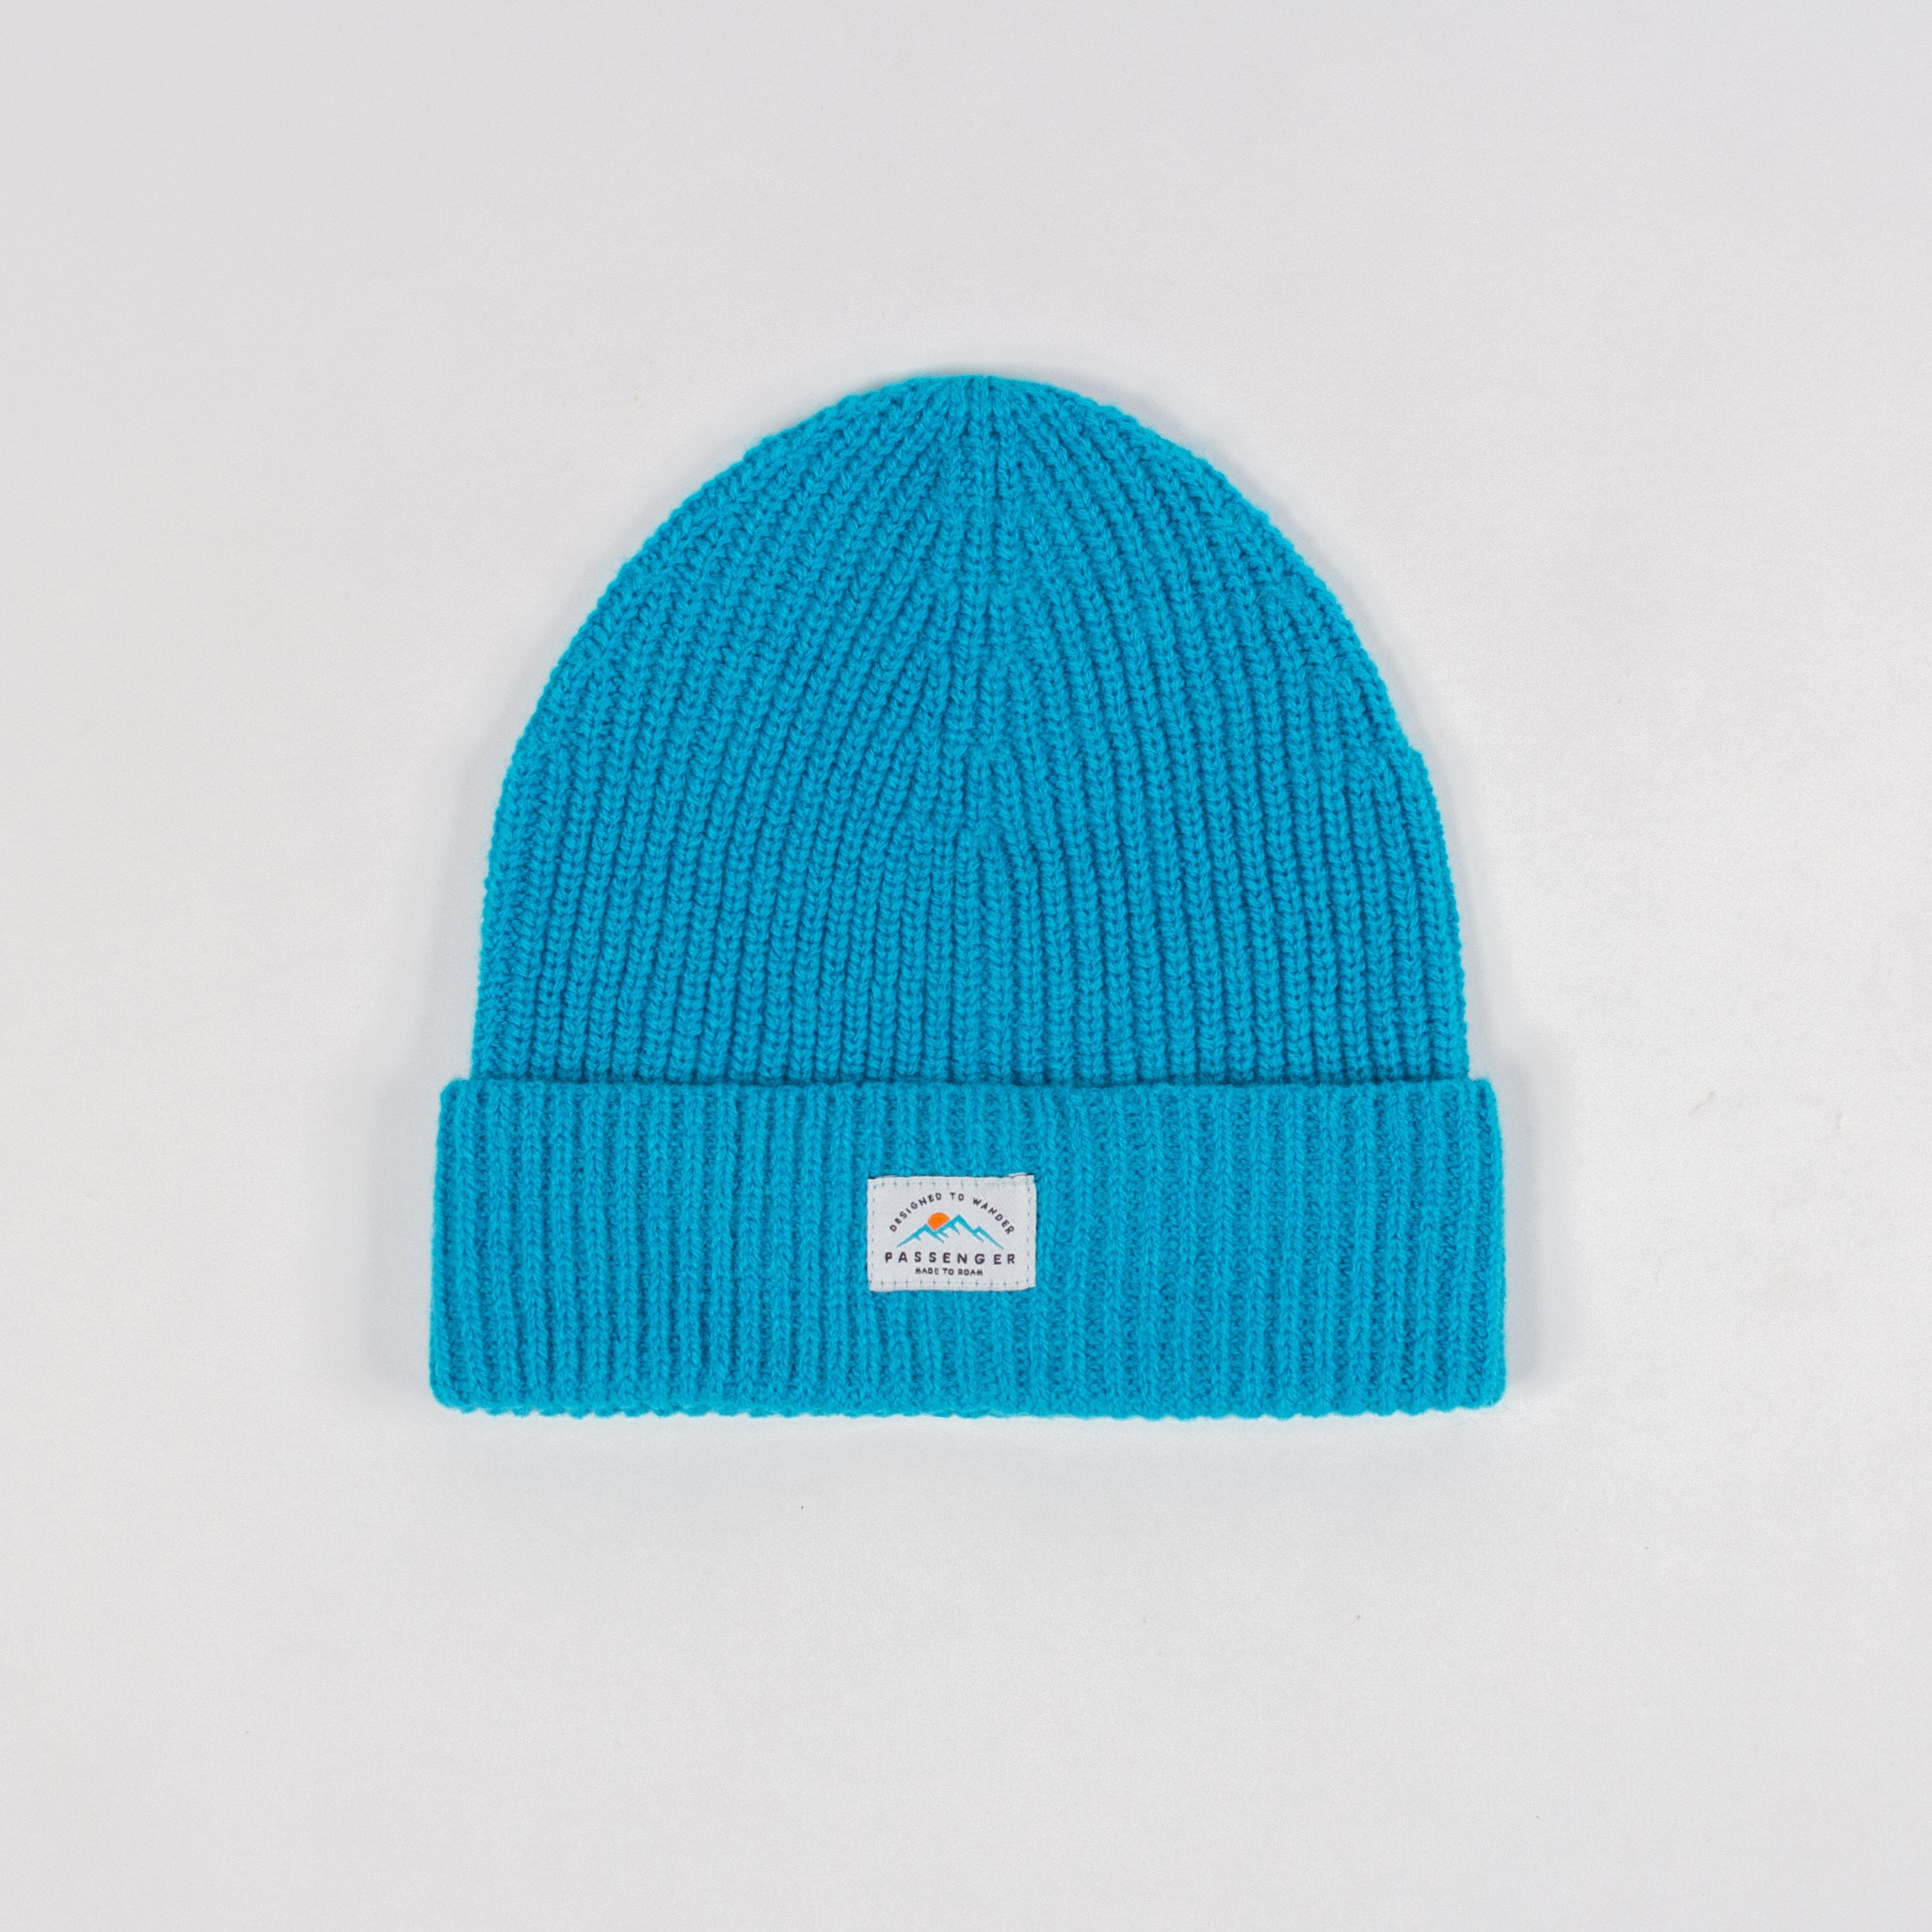 Compass Beanie - Blue Nights Navy image 3